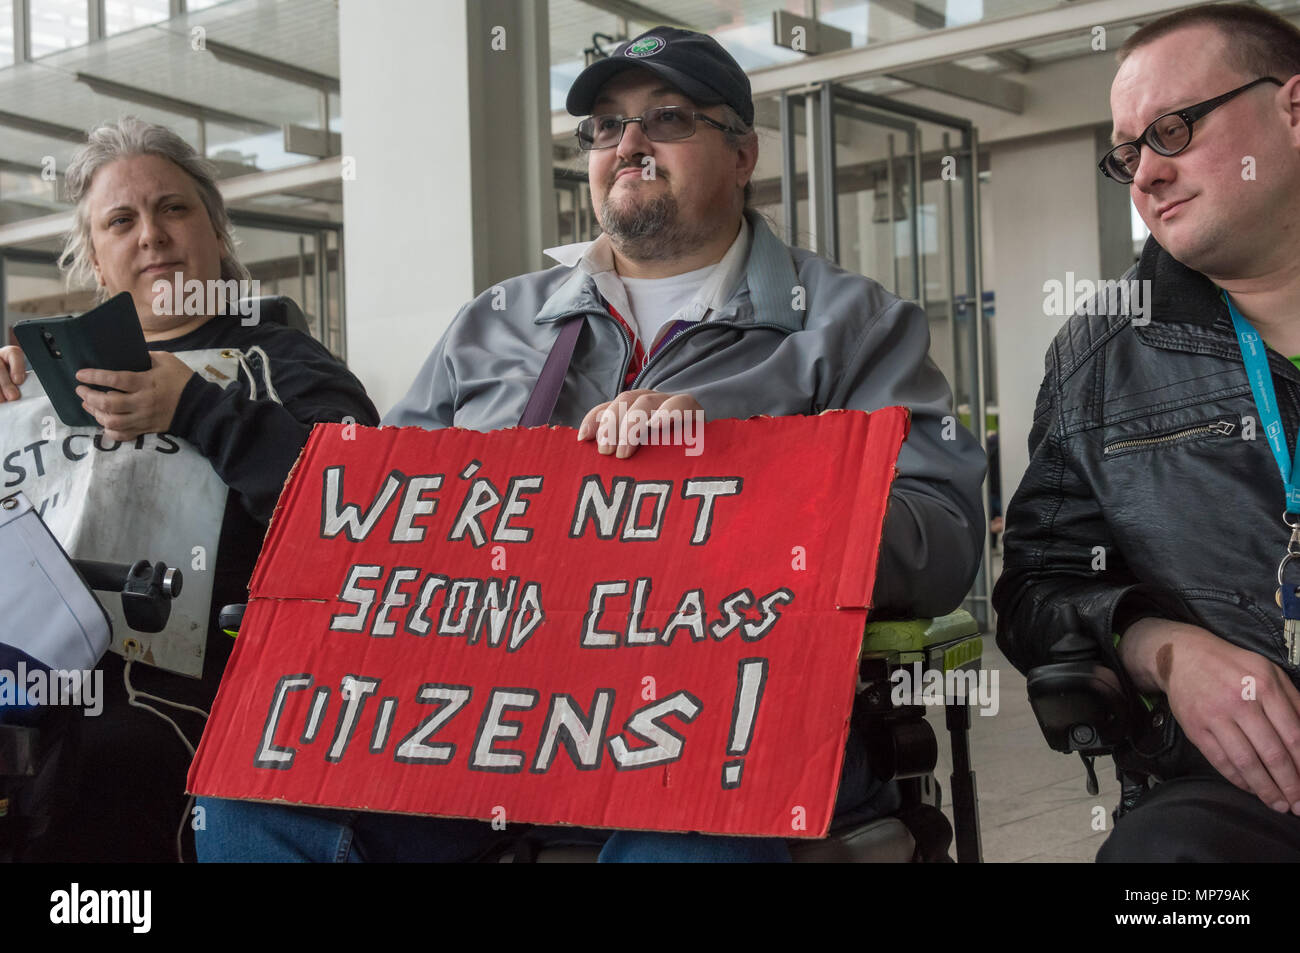 London, UK. 21st May 2018. A man in a wheelchair holds a poster 'We're Not Second Class Citizens' at the 'People's Picket' by disabled rail passengers from Disabled People Against Cuts along with the Association of British Commuters and RMT members outside London Bridge station. GTR uses a staff training guide in which they are dehumanised as 'PRM's  and staff are instructed to leave wheelchair users on the platform, even when they have arranged and pre-booked a journey. Credit: Peter Marshall/Alamy Live News - Stock Image